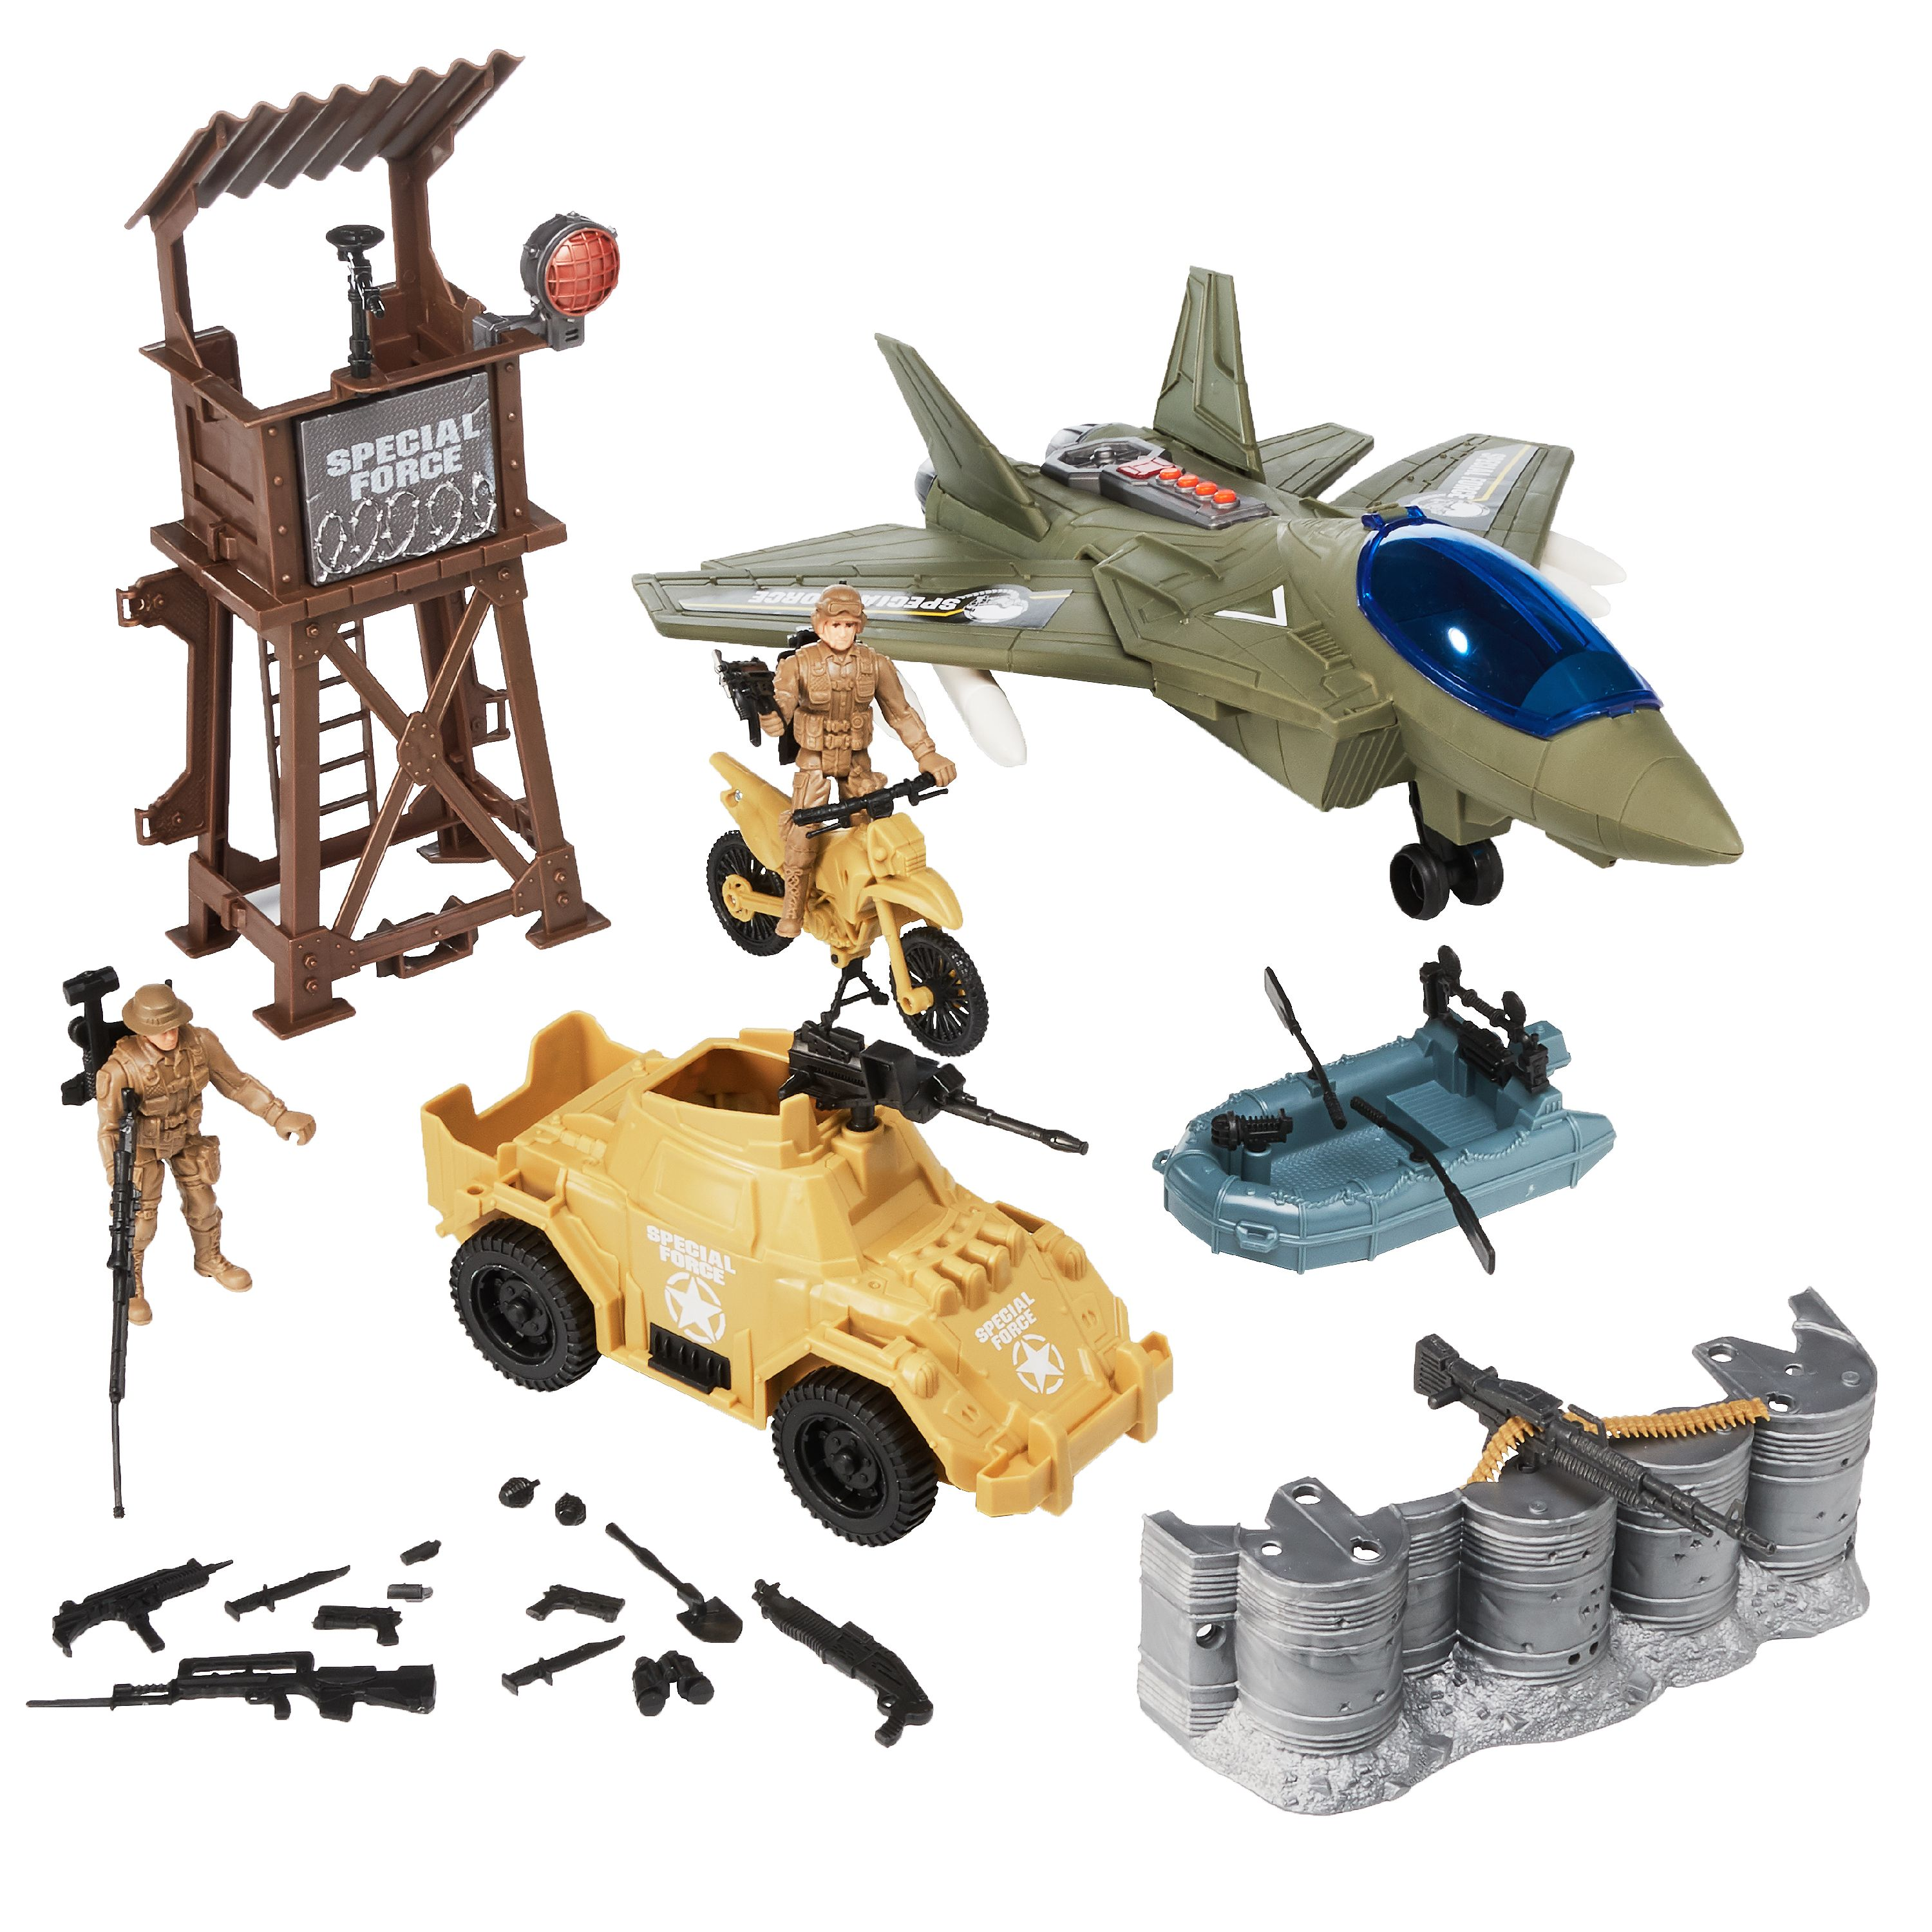 Kid Connection Military Plane Play Set, 34 Pieces by Wal-Mart Stores, Inc.